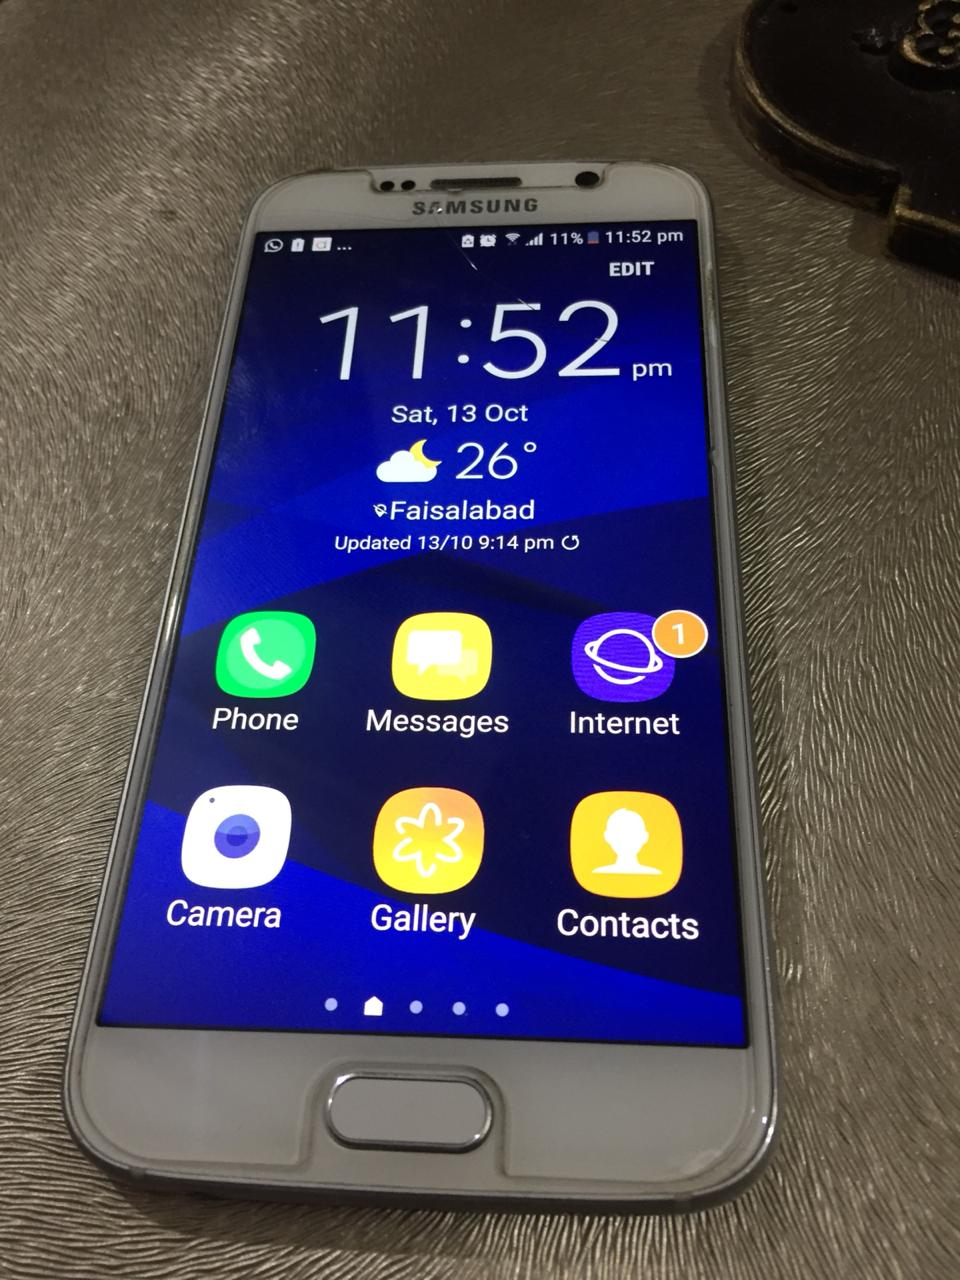 Samsung Galaxy S6 100% Working. CRYSTAL CLEAR FRONT. No Fault, Never Repaired. - photo 2